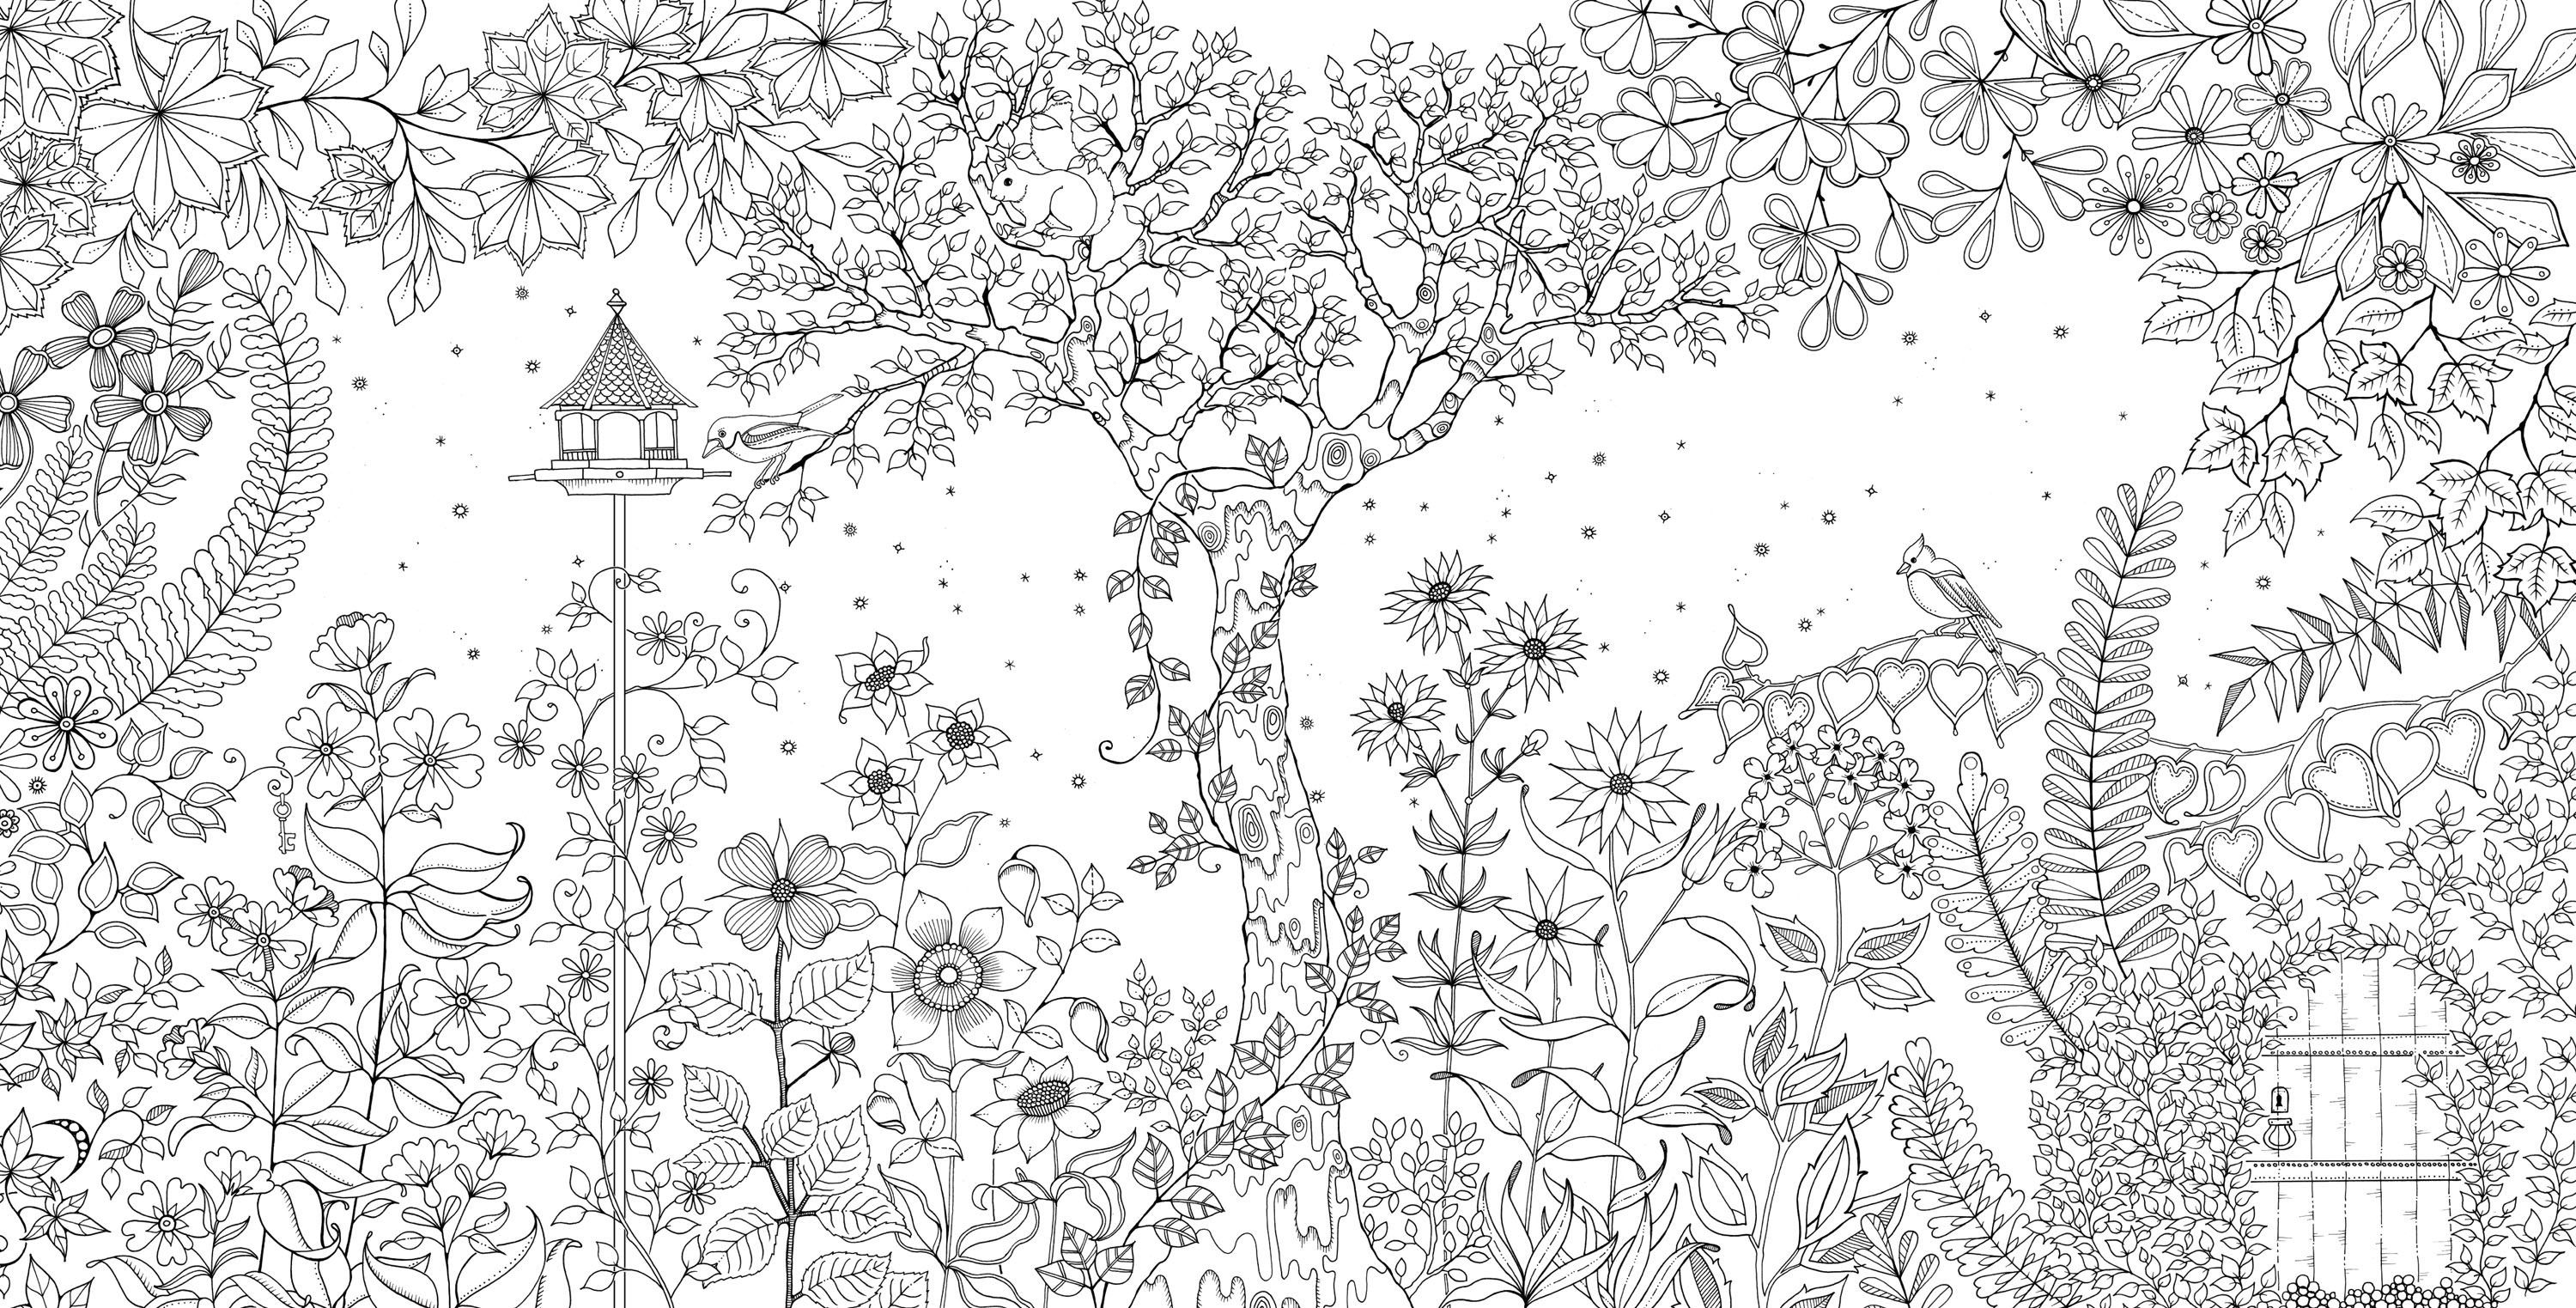 Colouring Books Created By Johanna Basford Secret Garden And Enchanted Forest Are Topping The Amazon Best Seller List Description From